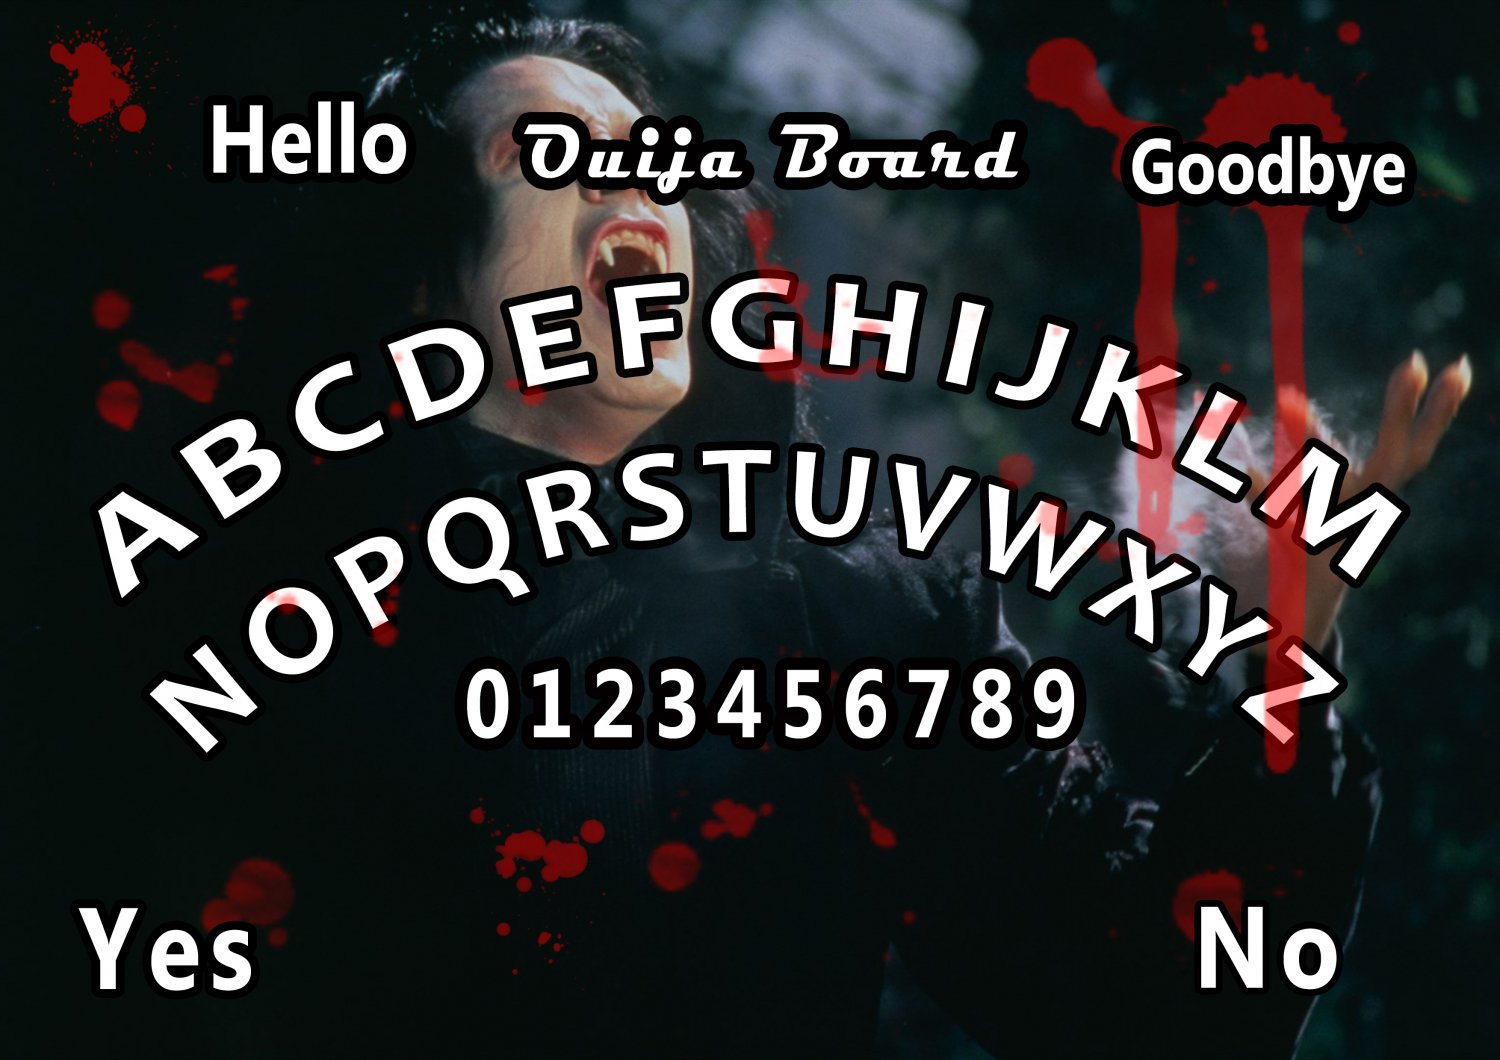 Limited Edition Dracula A4 Laminated Ouija Board / Poster | Ghost Hunting | EVP | Seances.